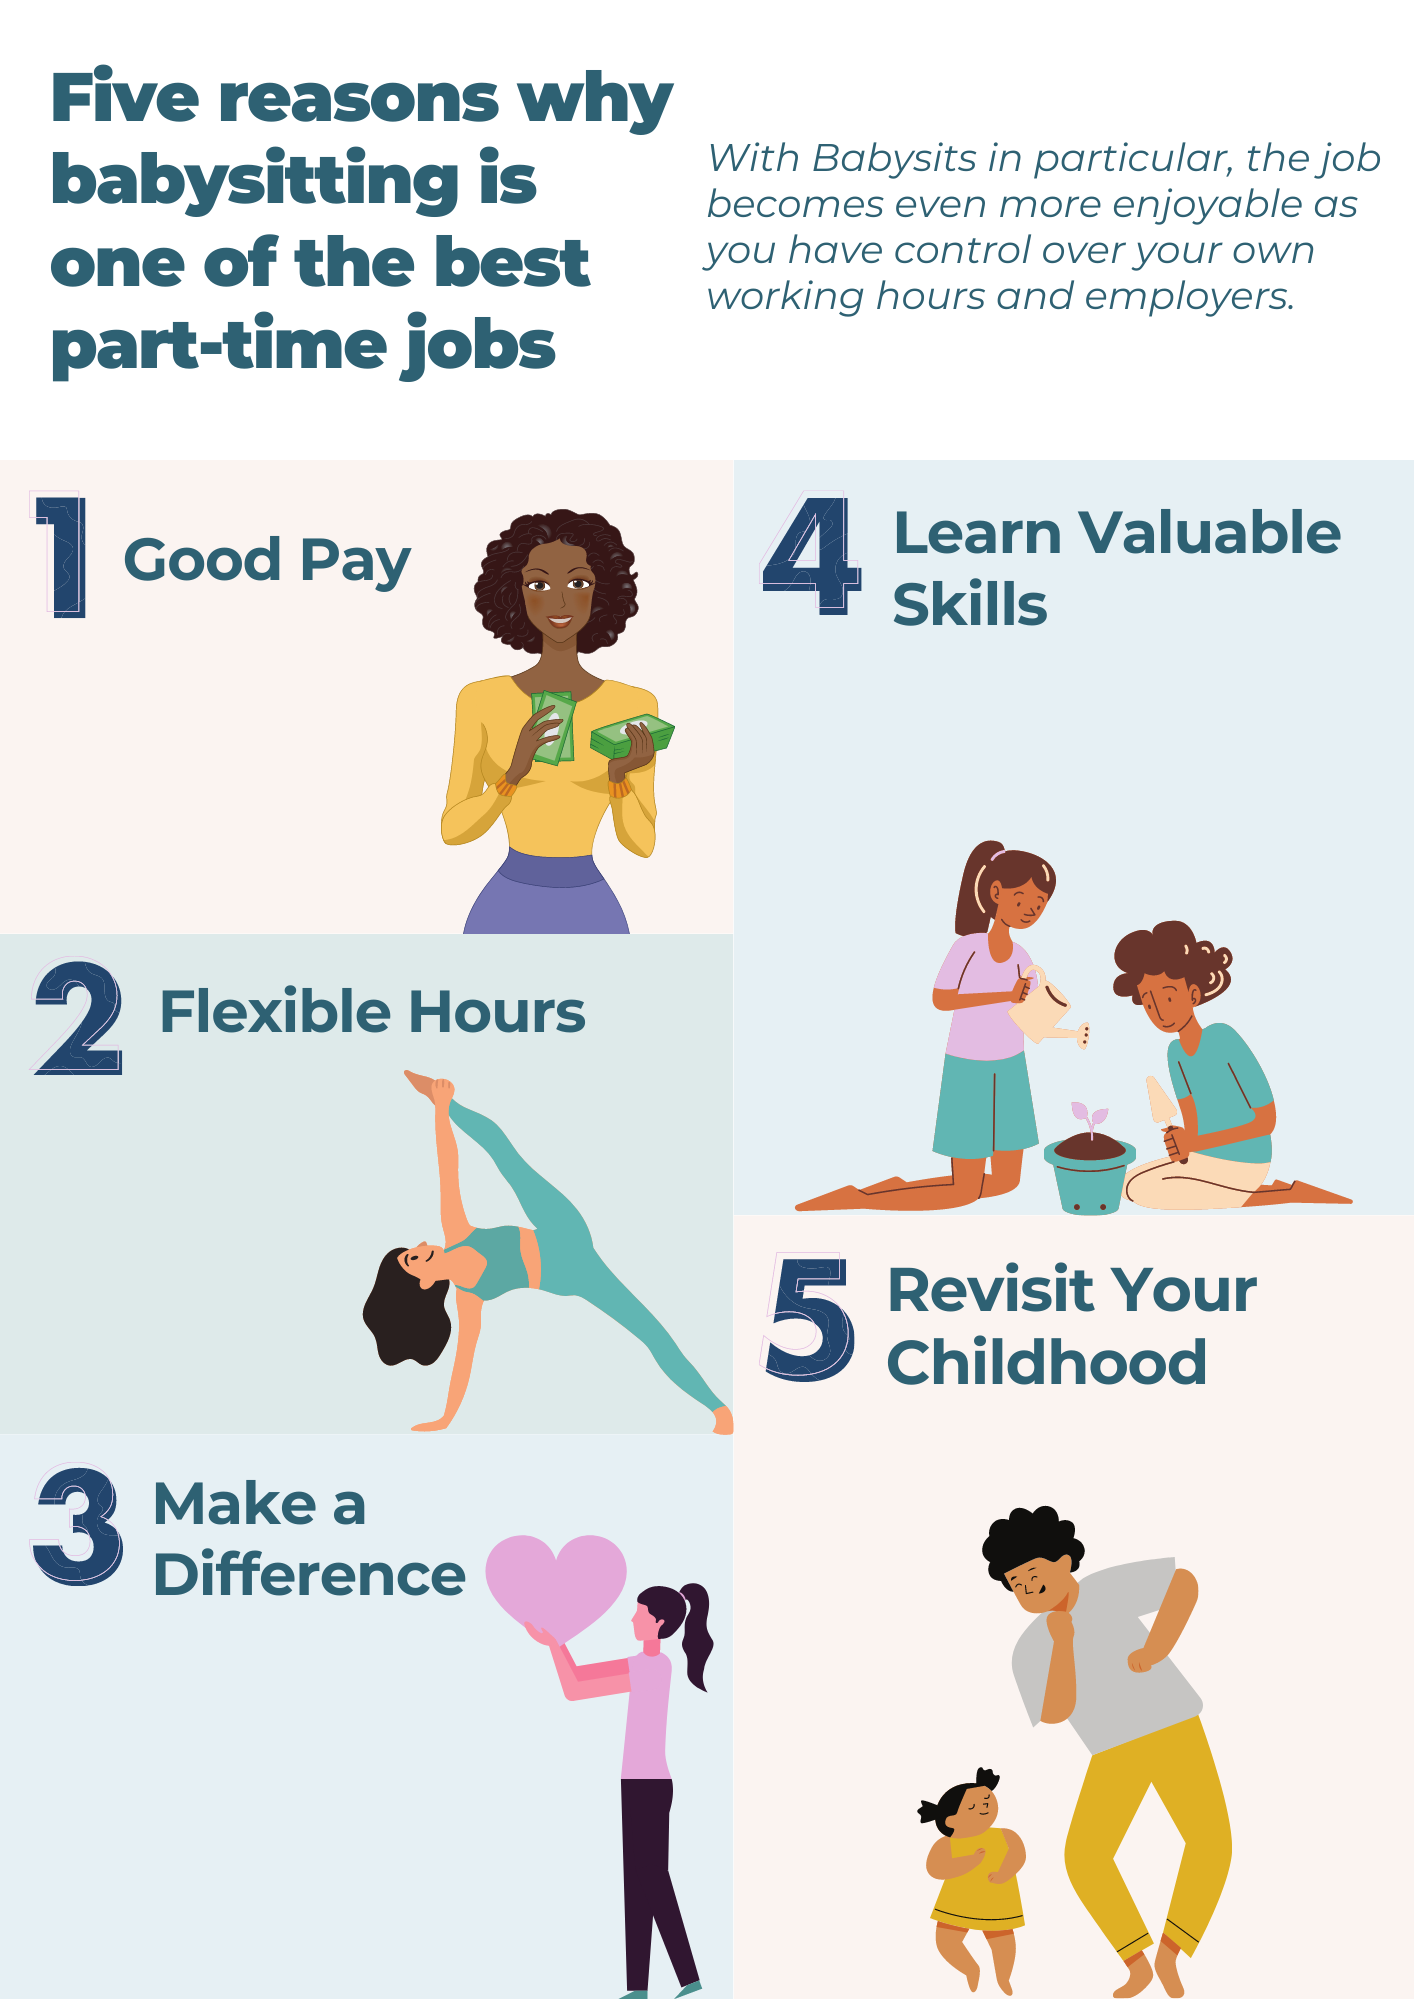 Babysitting as a part-time job